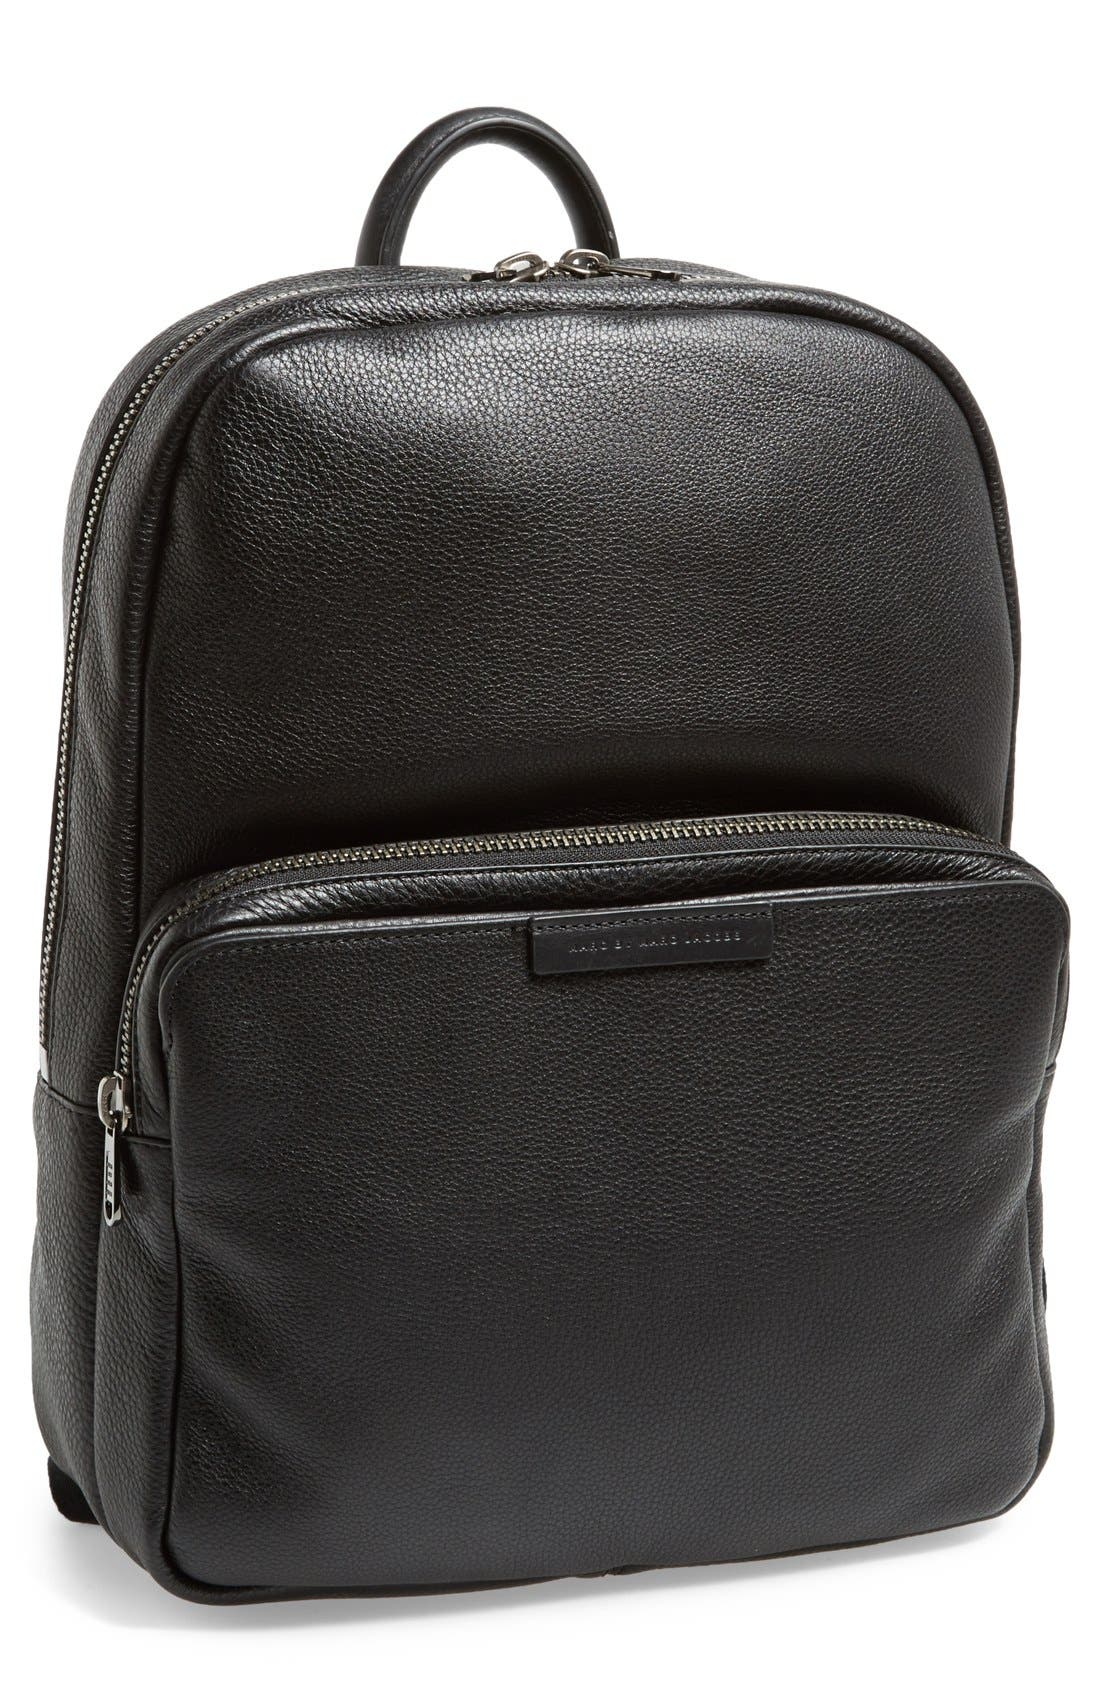 Alternate Image 1 Selected - MARC BY MARC JACOBS 'Classic' Leather Backpack